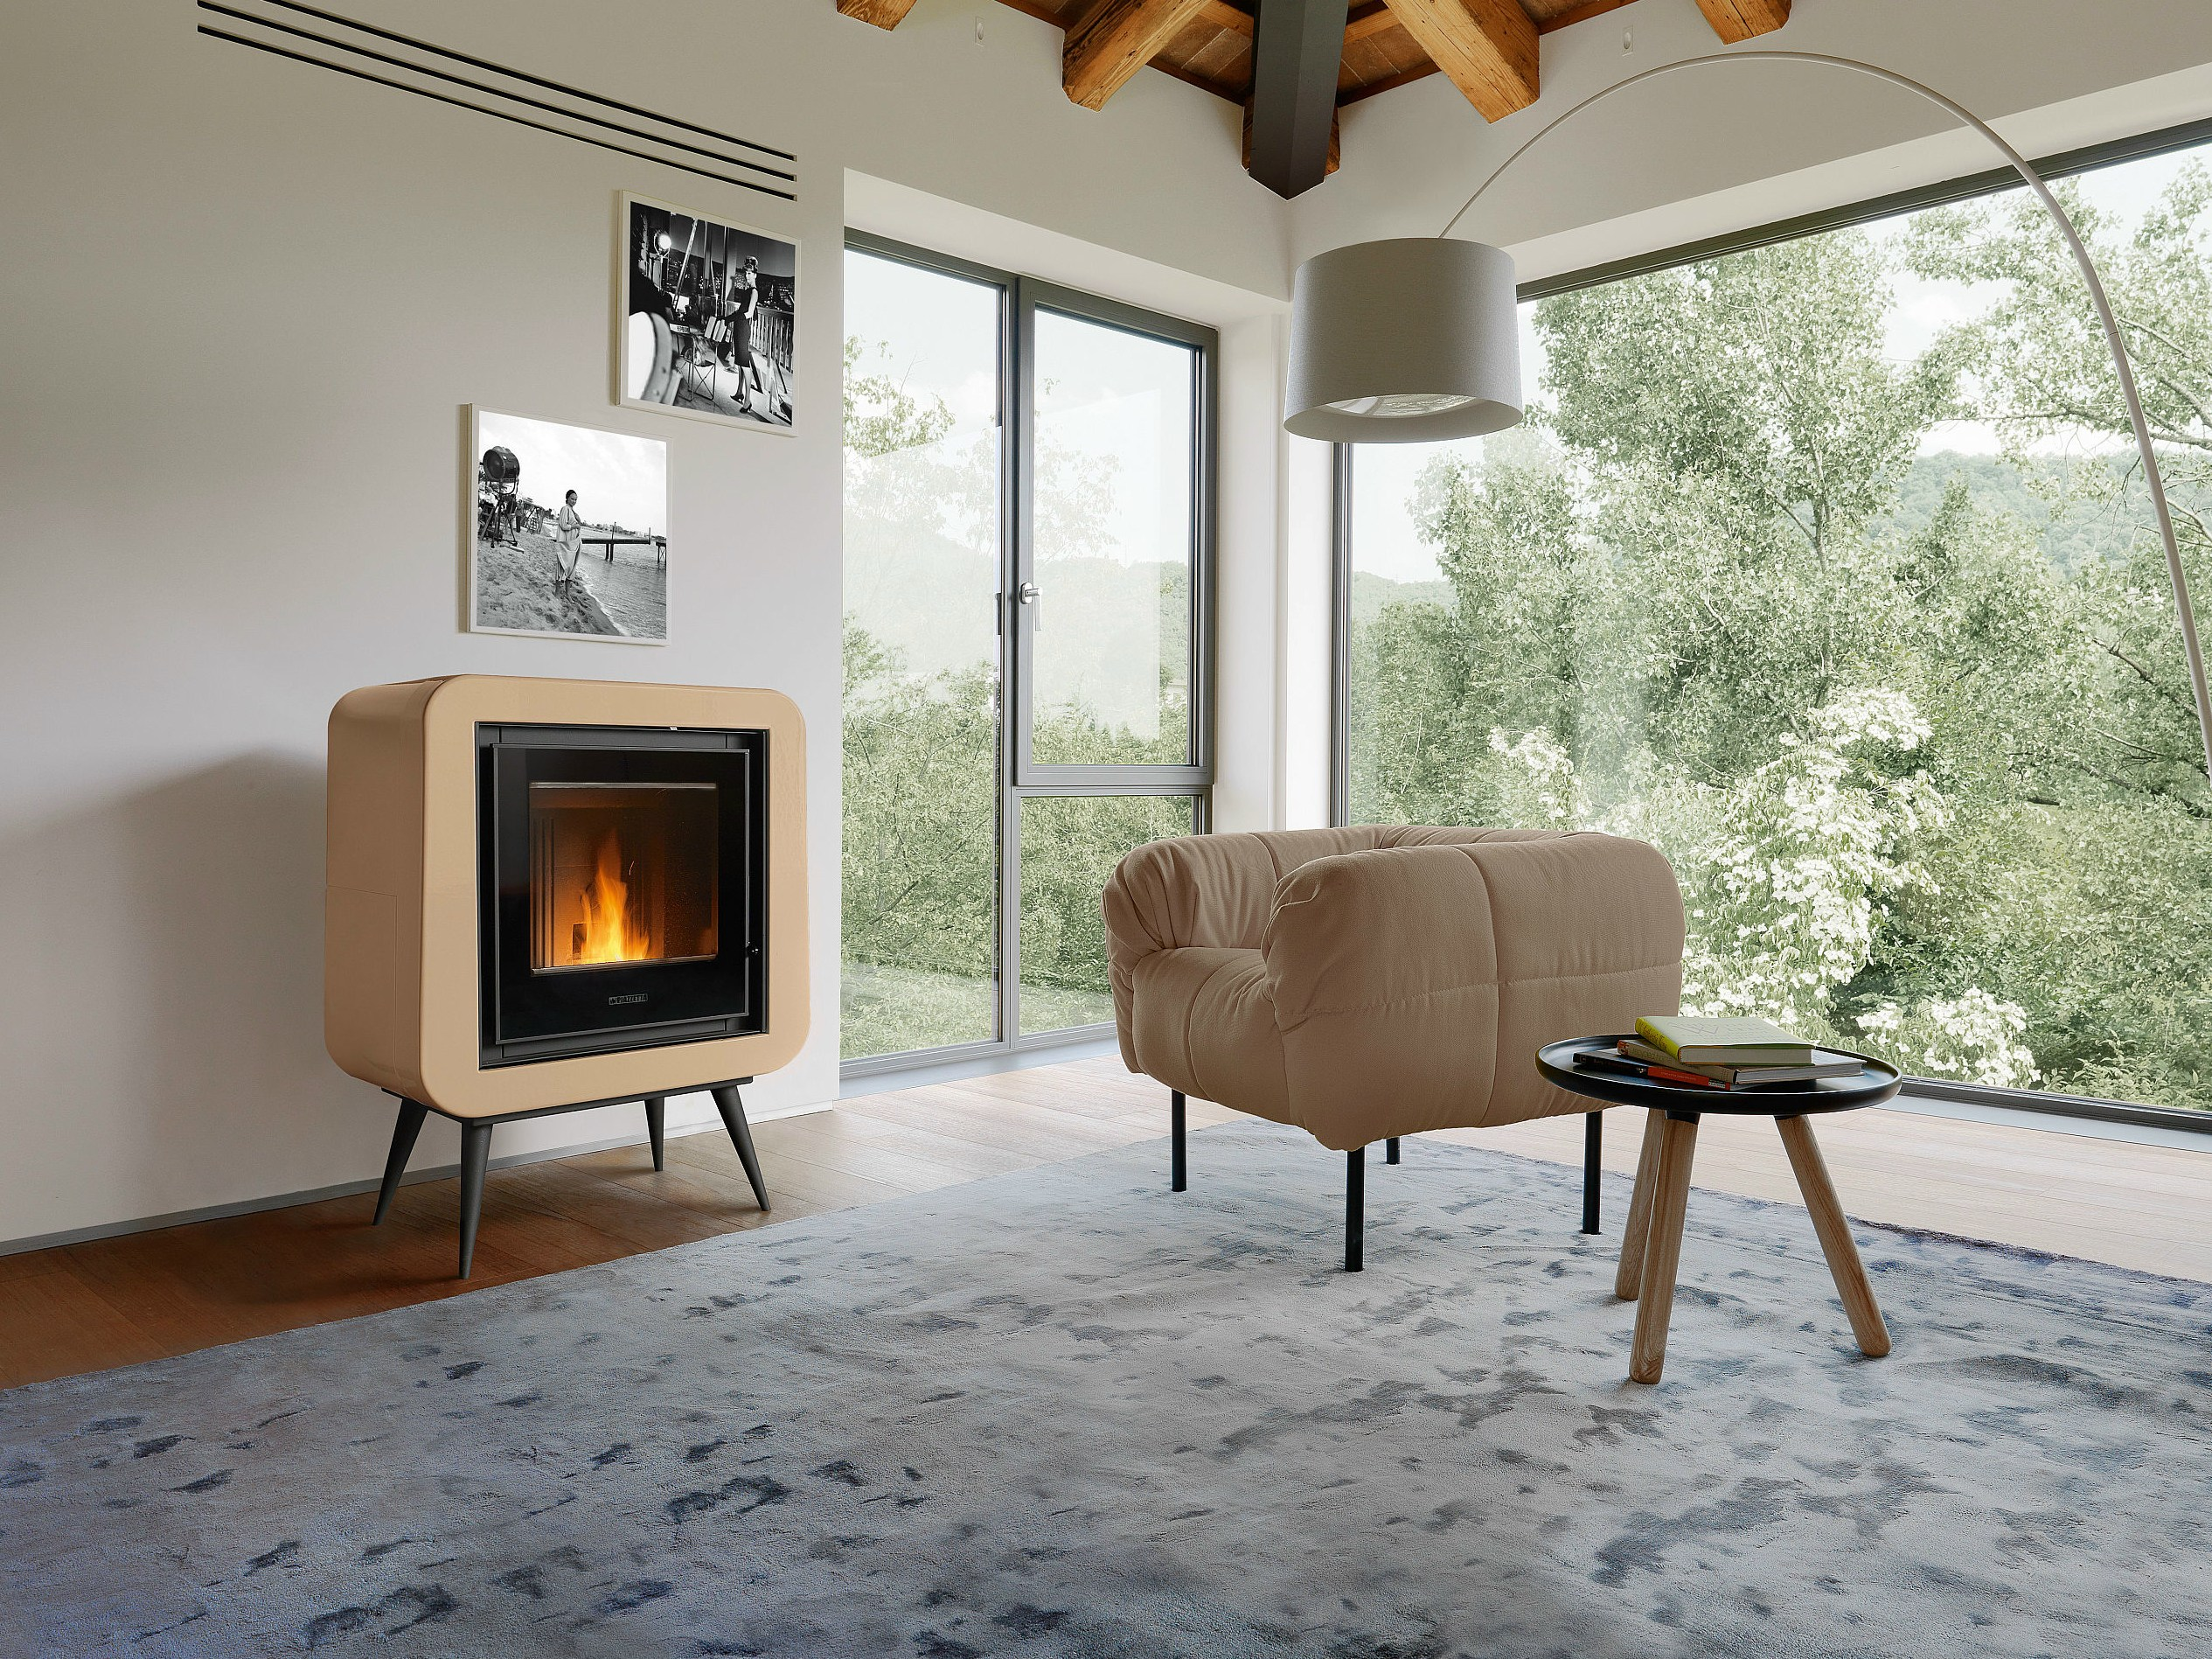 La quiete del calore unico people style - Stufe a pellet silenziose ...